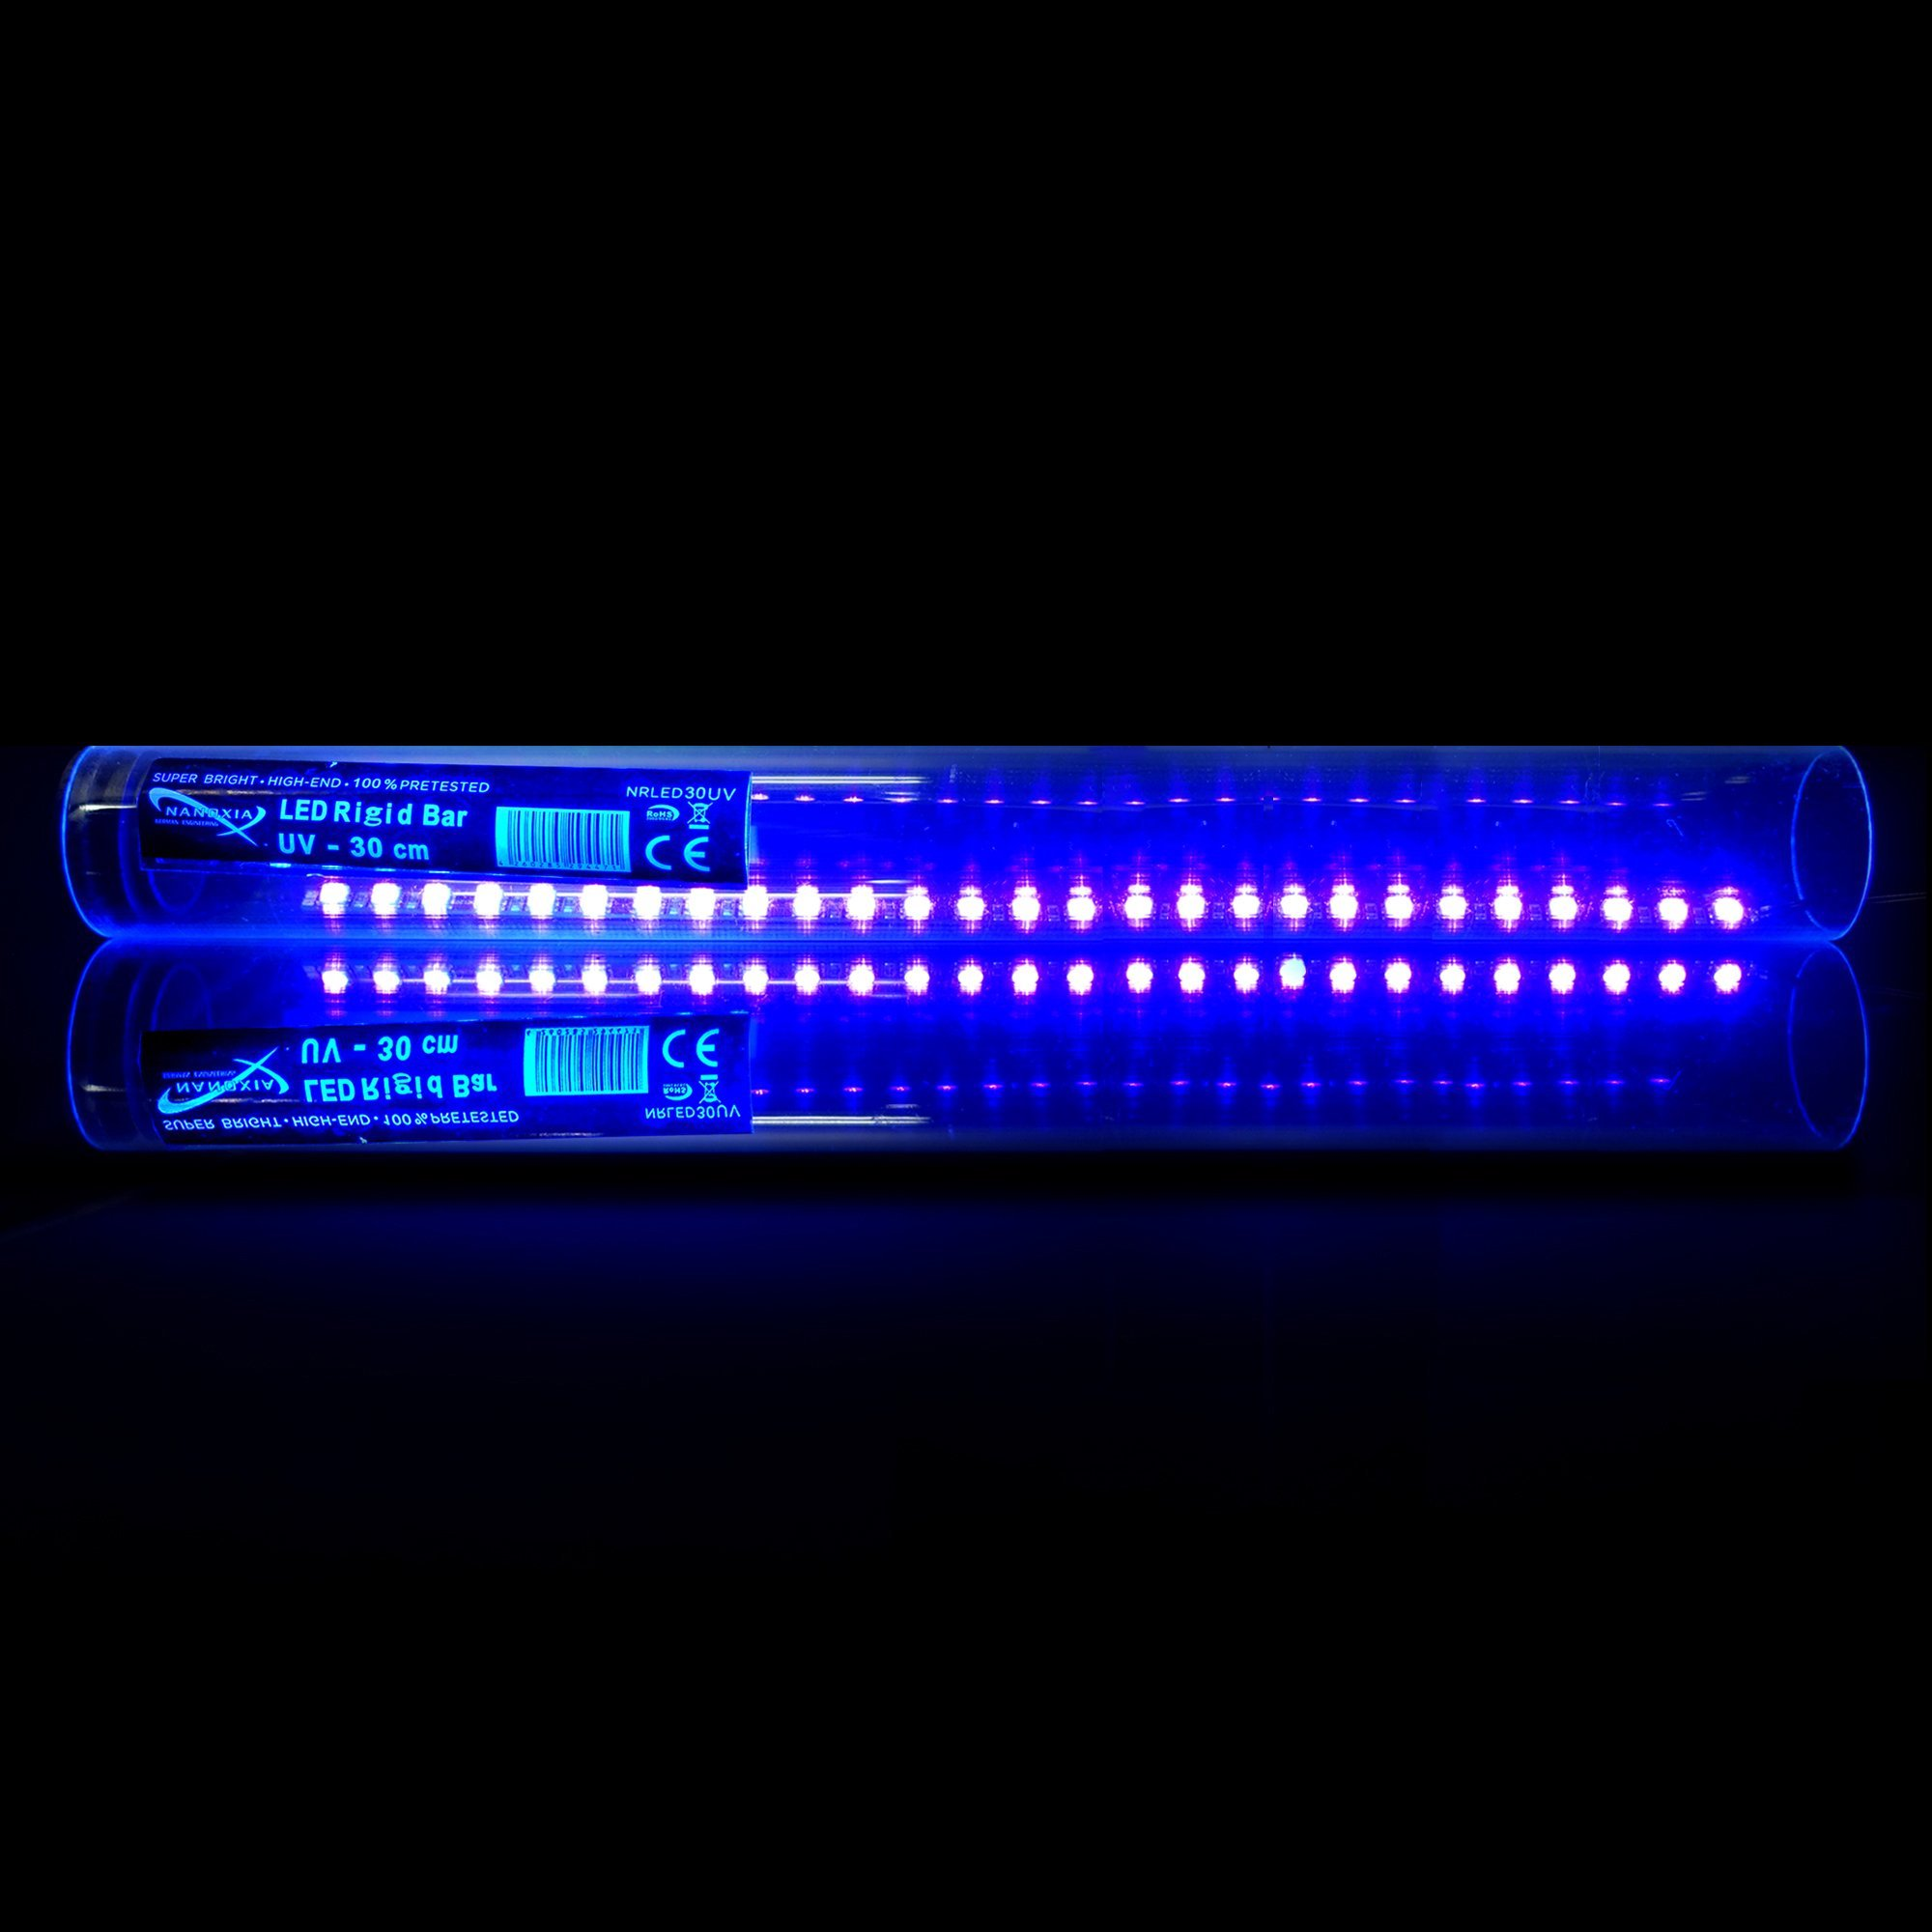 Nanoxia UV Rigid LED Bar with Magnetic Backing and SATA Powered, Ultra Bright 30cm 2-Pack